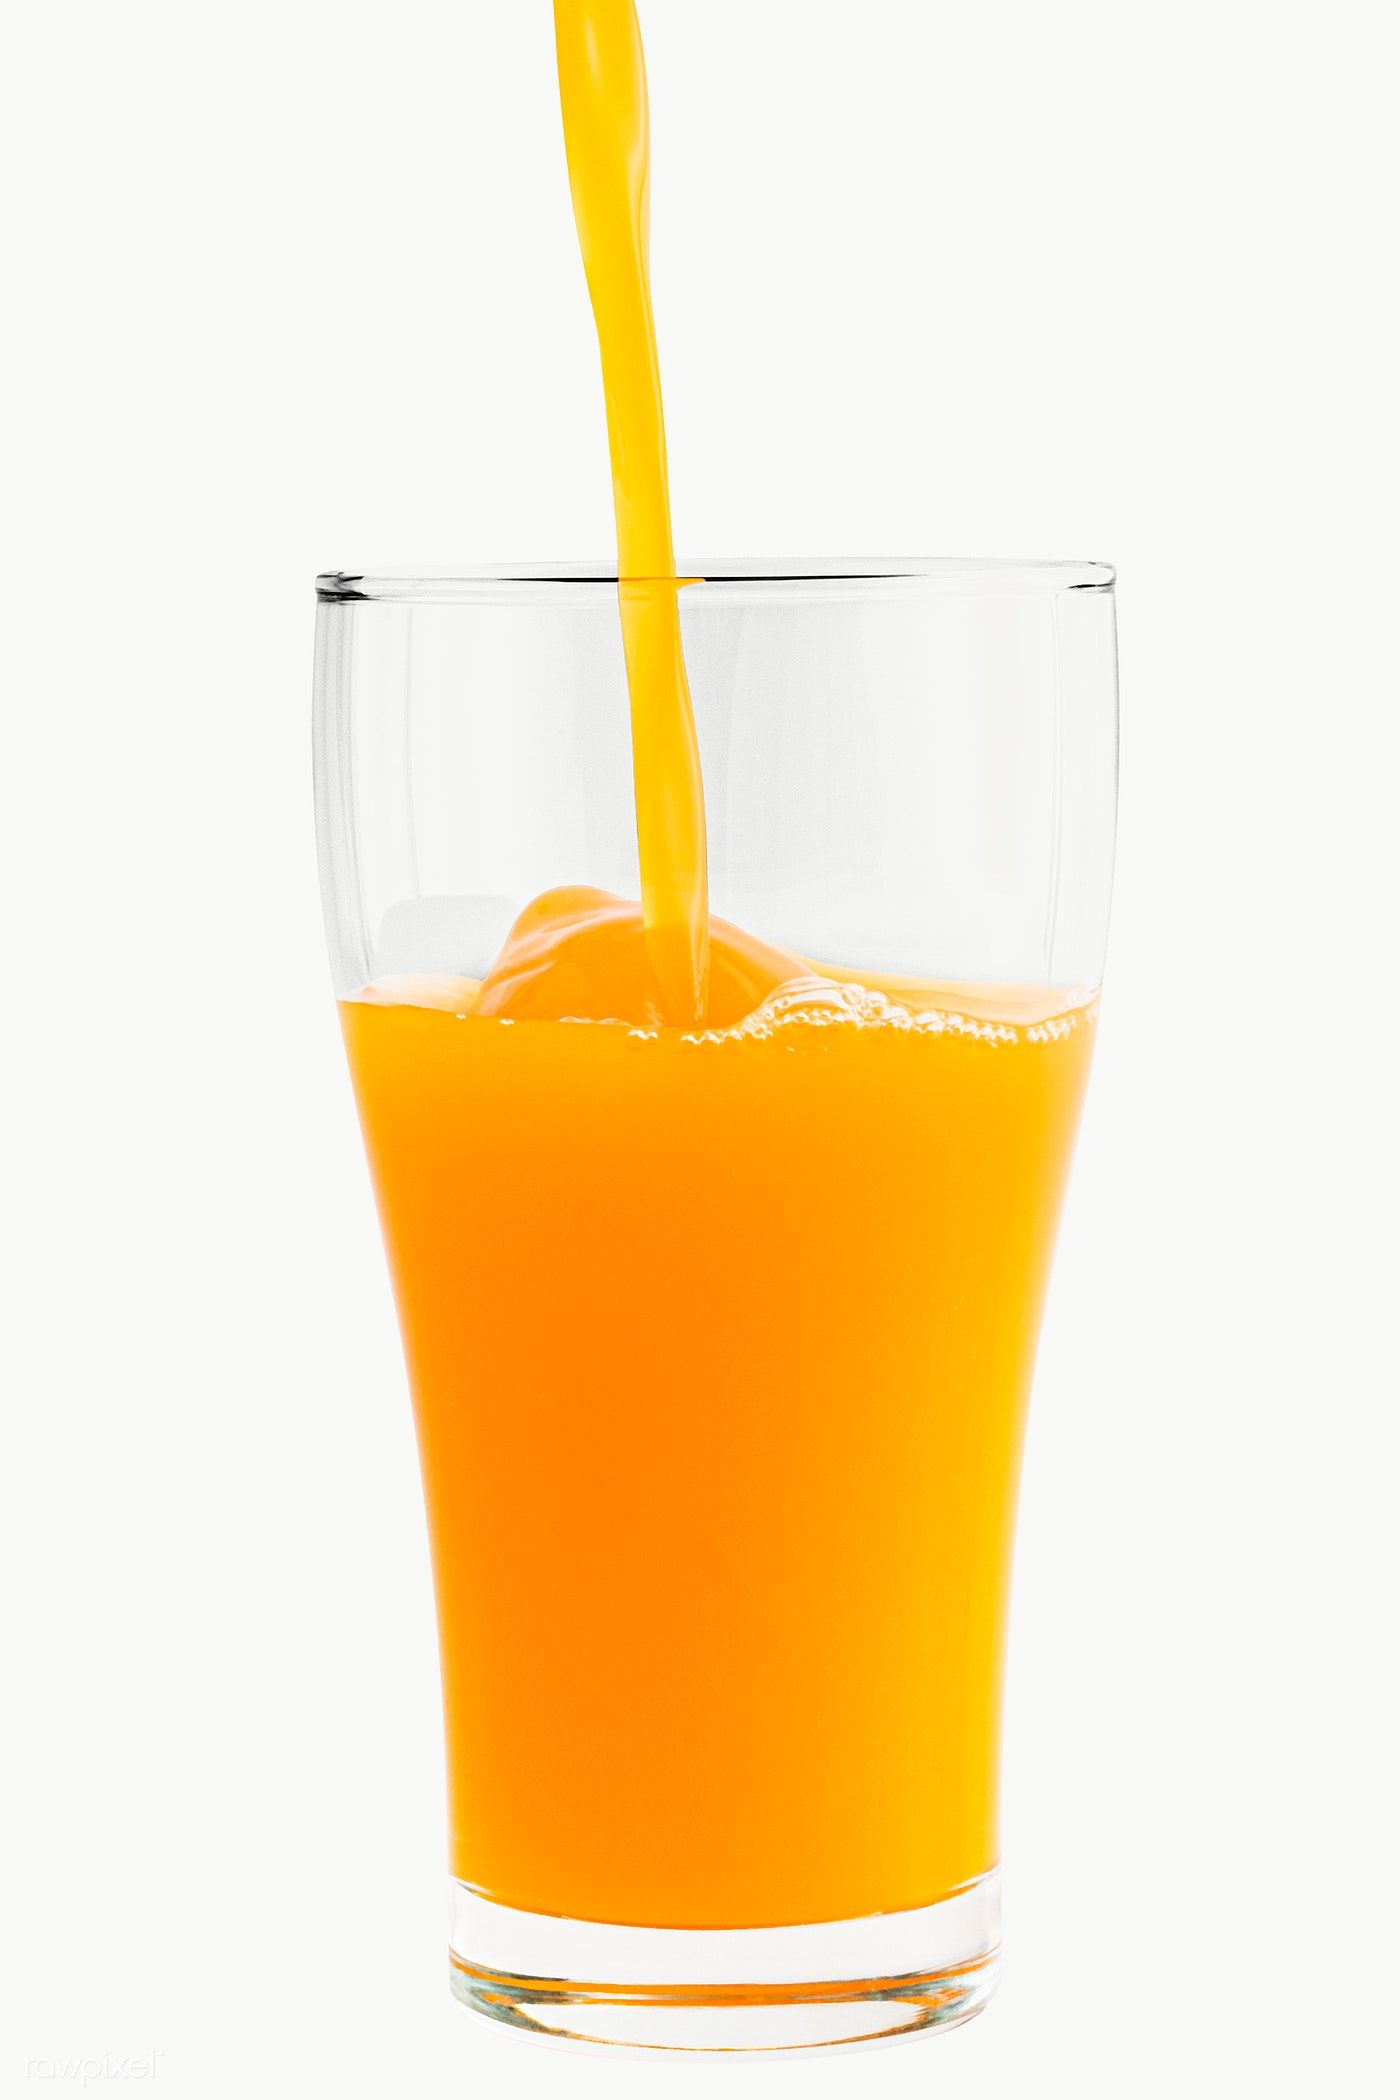 Download Premium Png Of Pouring Fresh Organic Orange Juice To A Glass